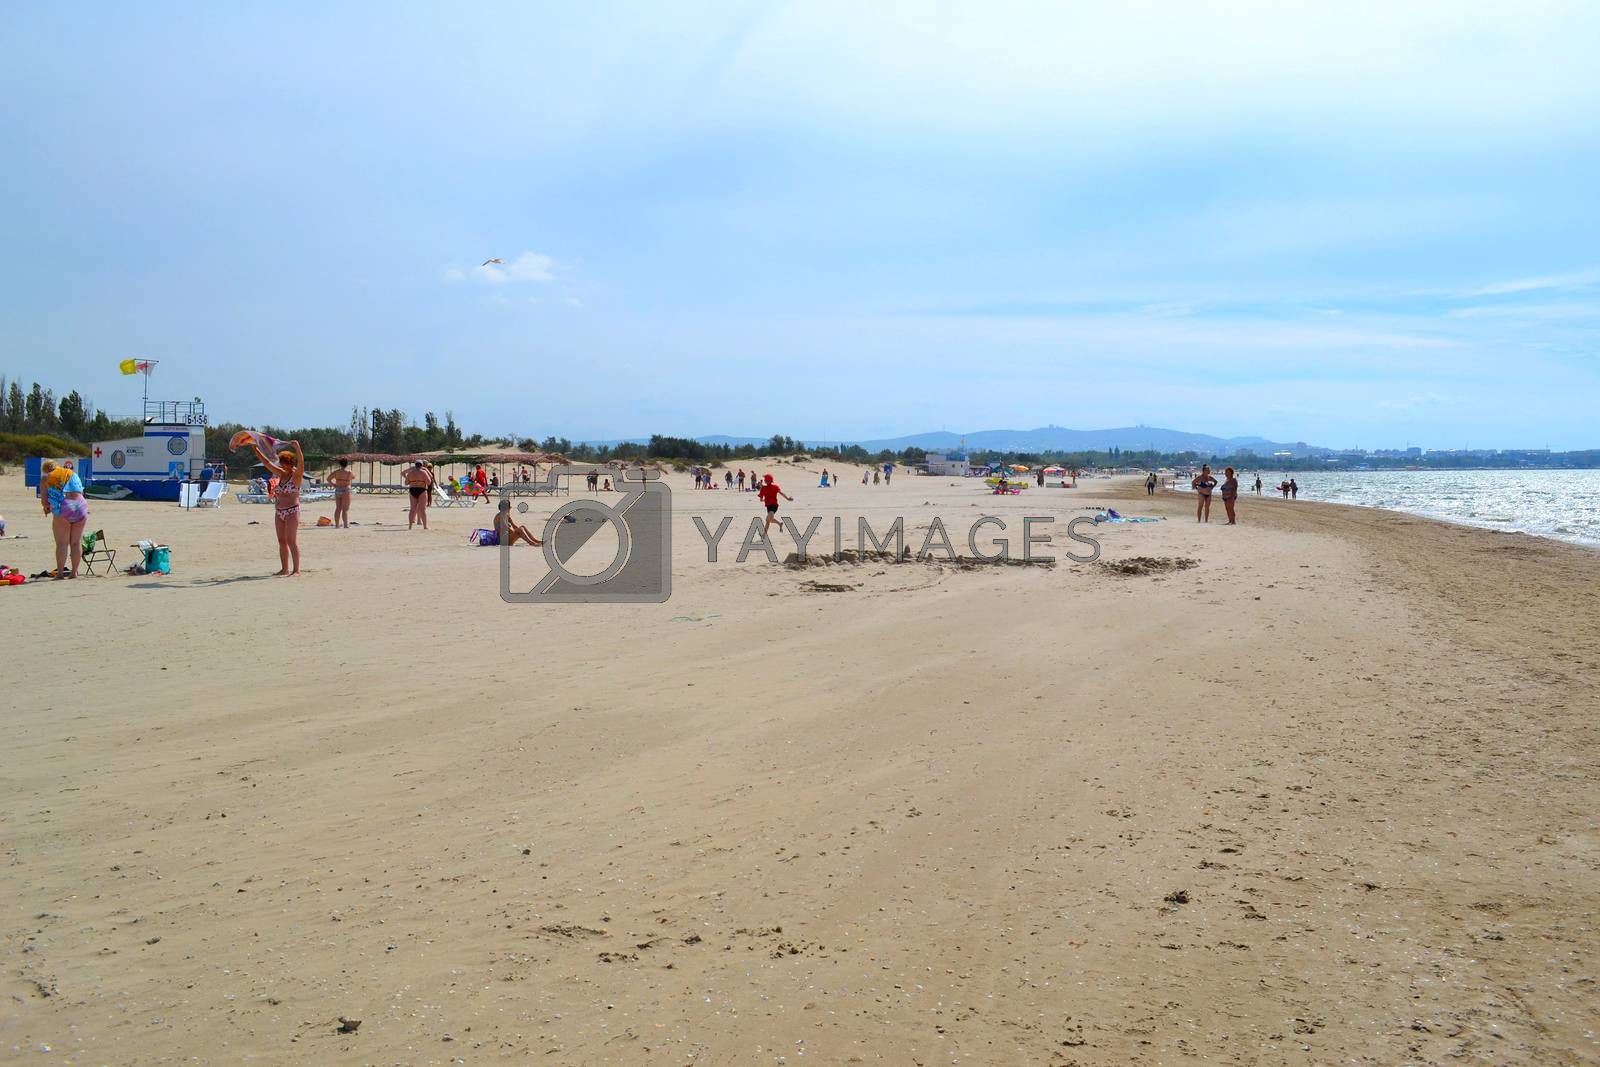 Royalty free image of Beach in Dzhemeta overlooking Anapa. by veronka72